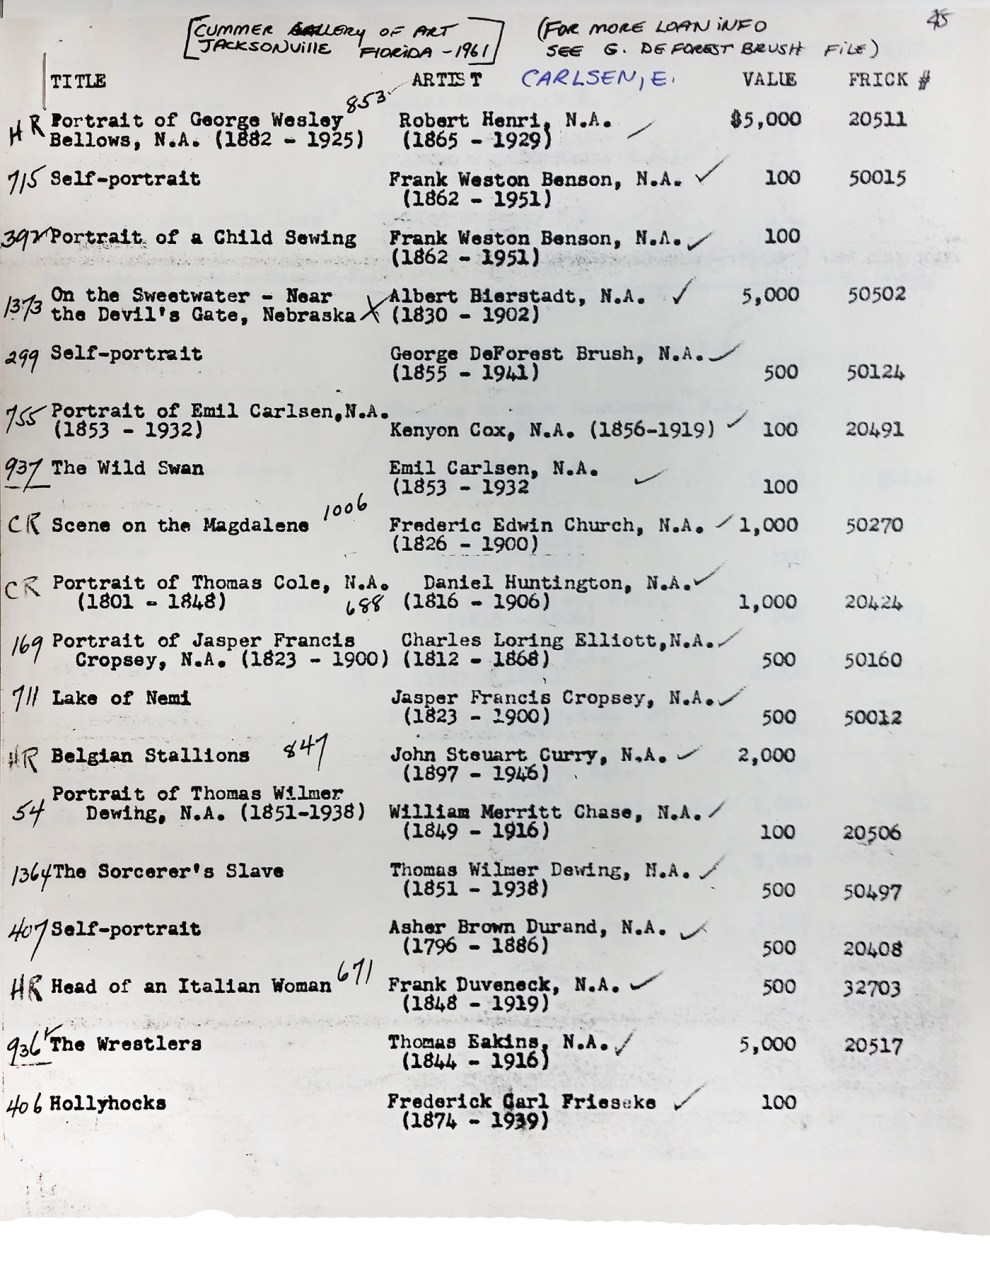 """Loan List for Cummer Gallery of Art Exhibition, 1961"" provided by National Academy of Art, New York, NY"